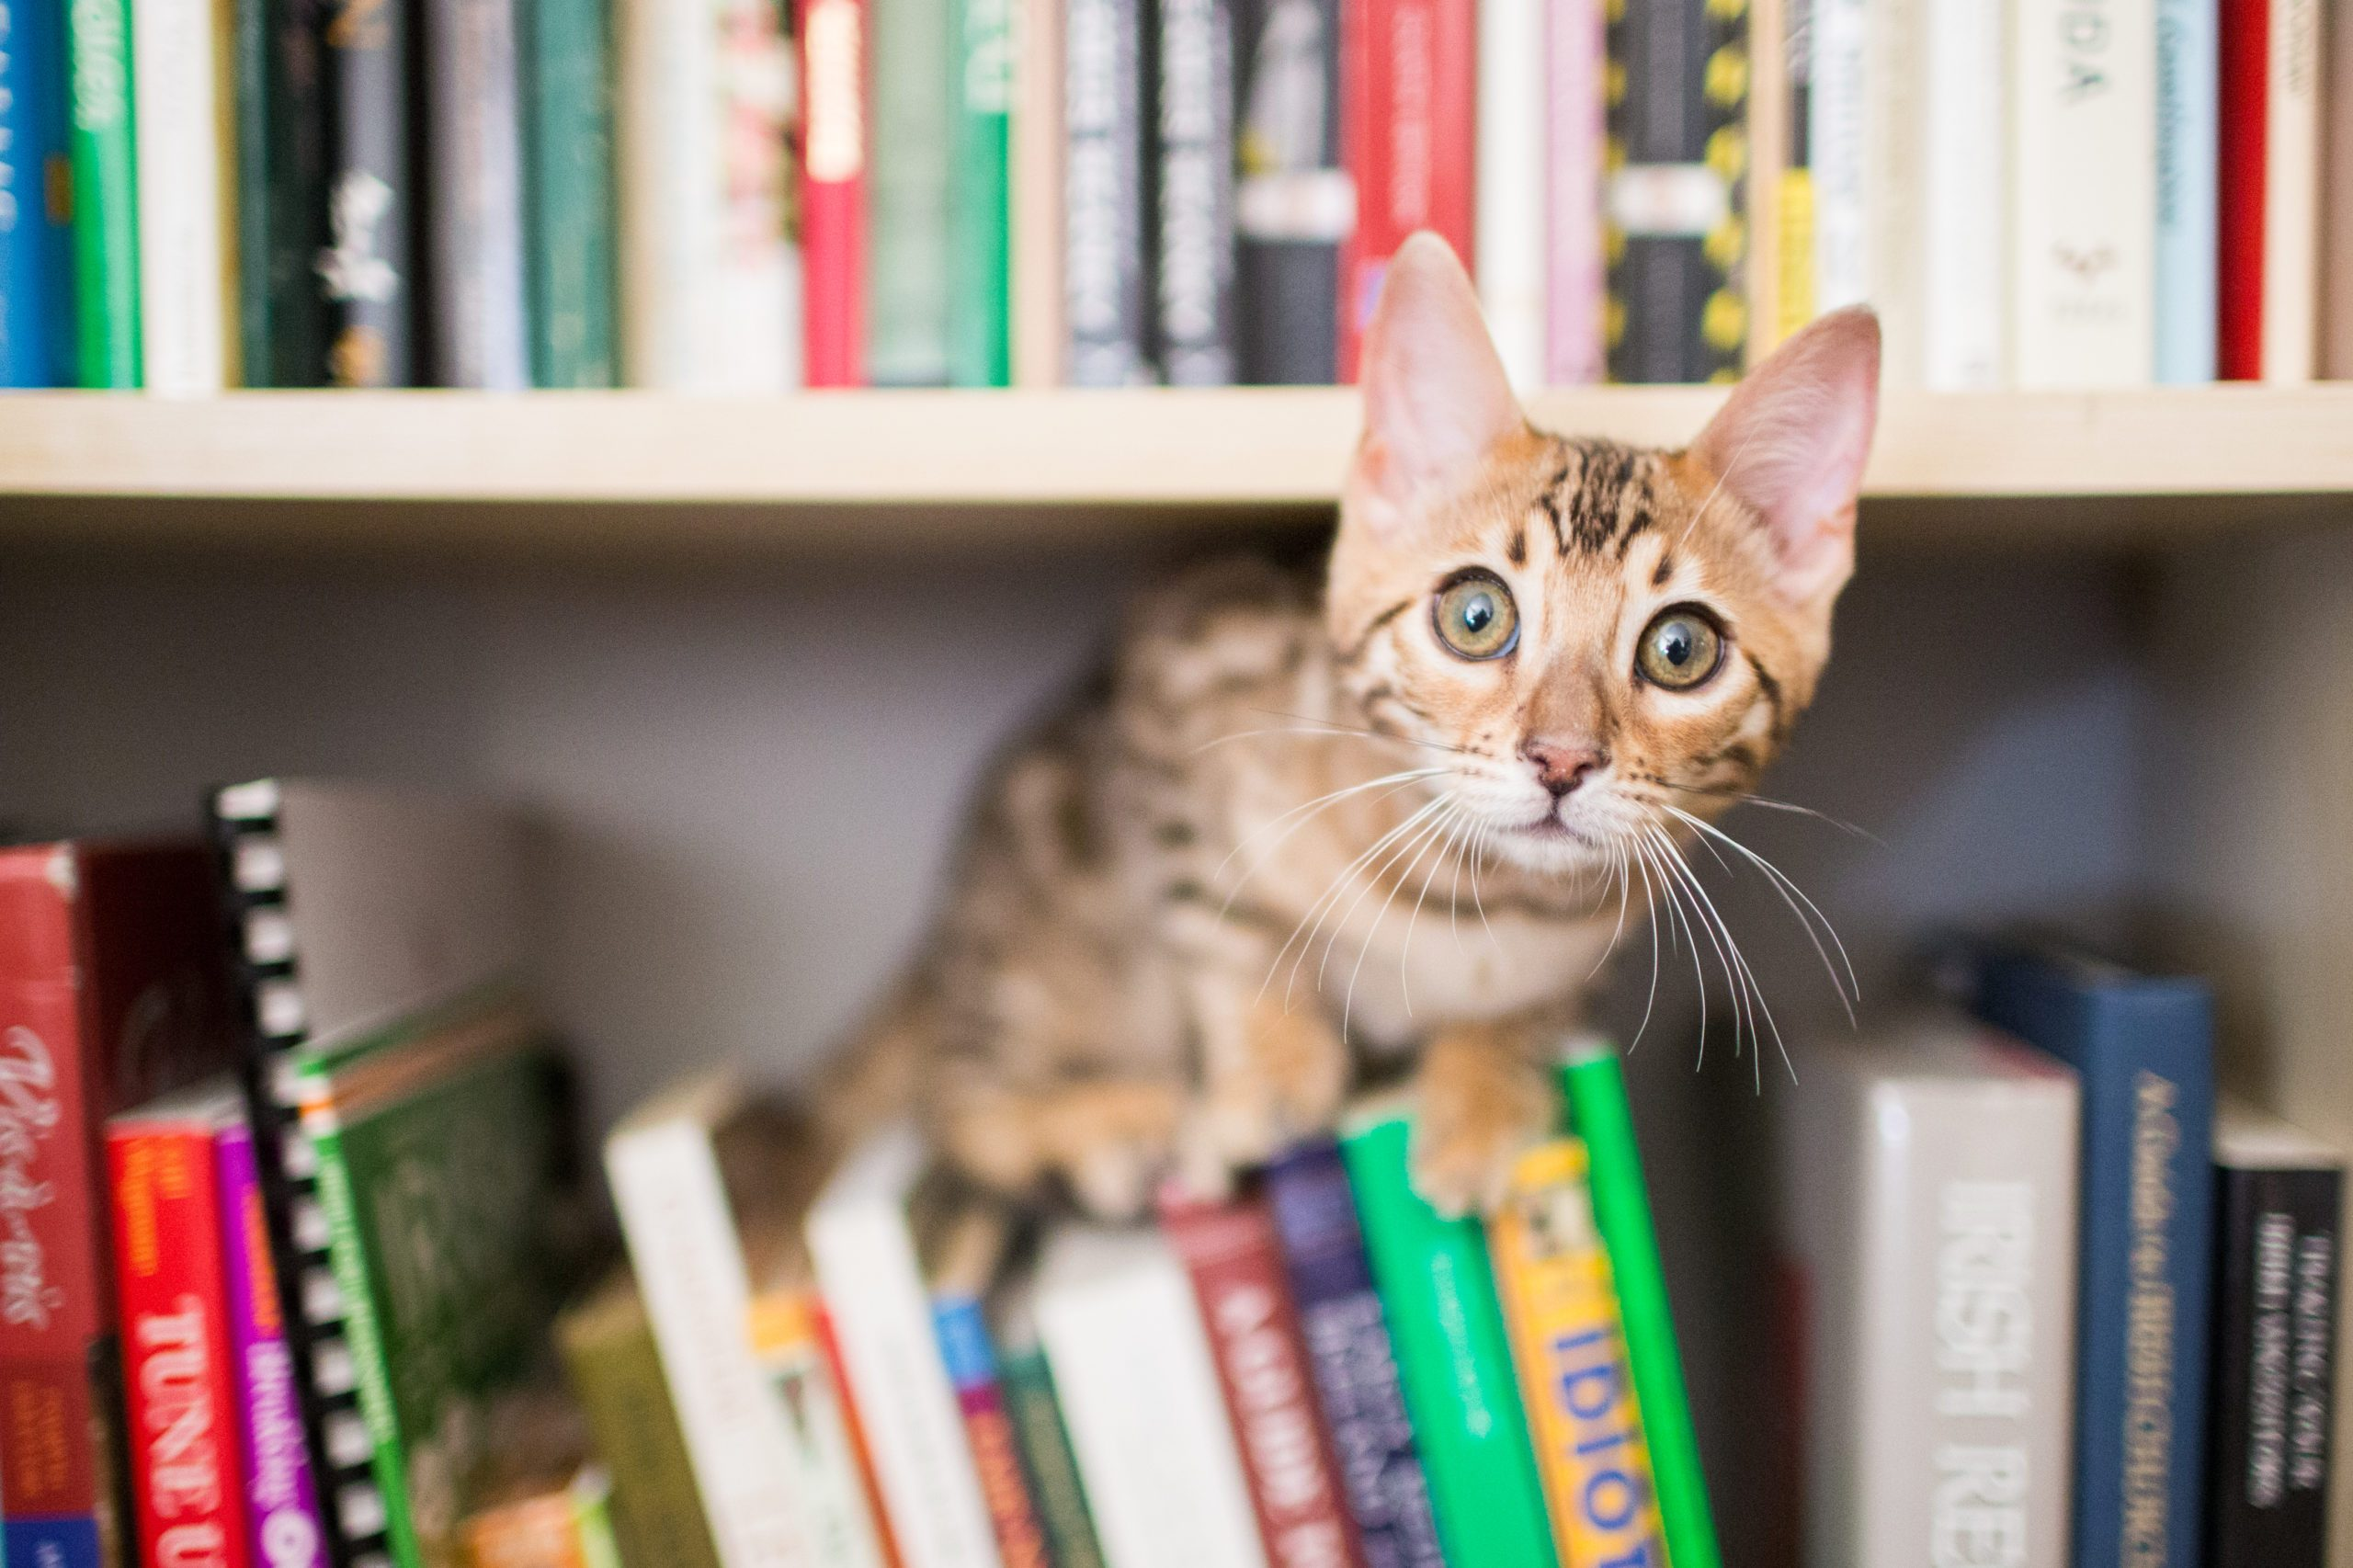 Curious Bengal kitten on bookshelf with books